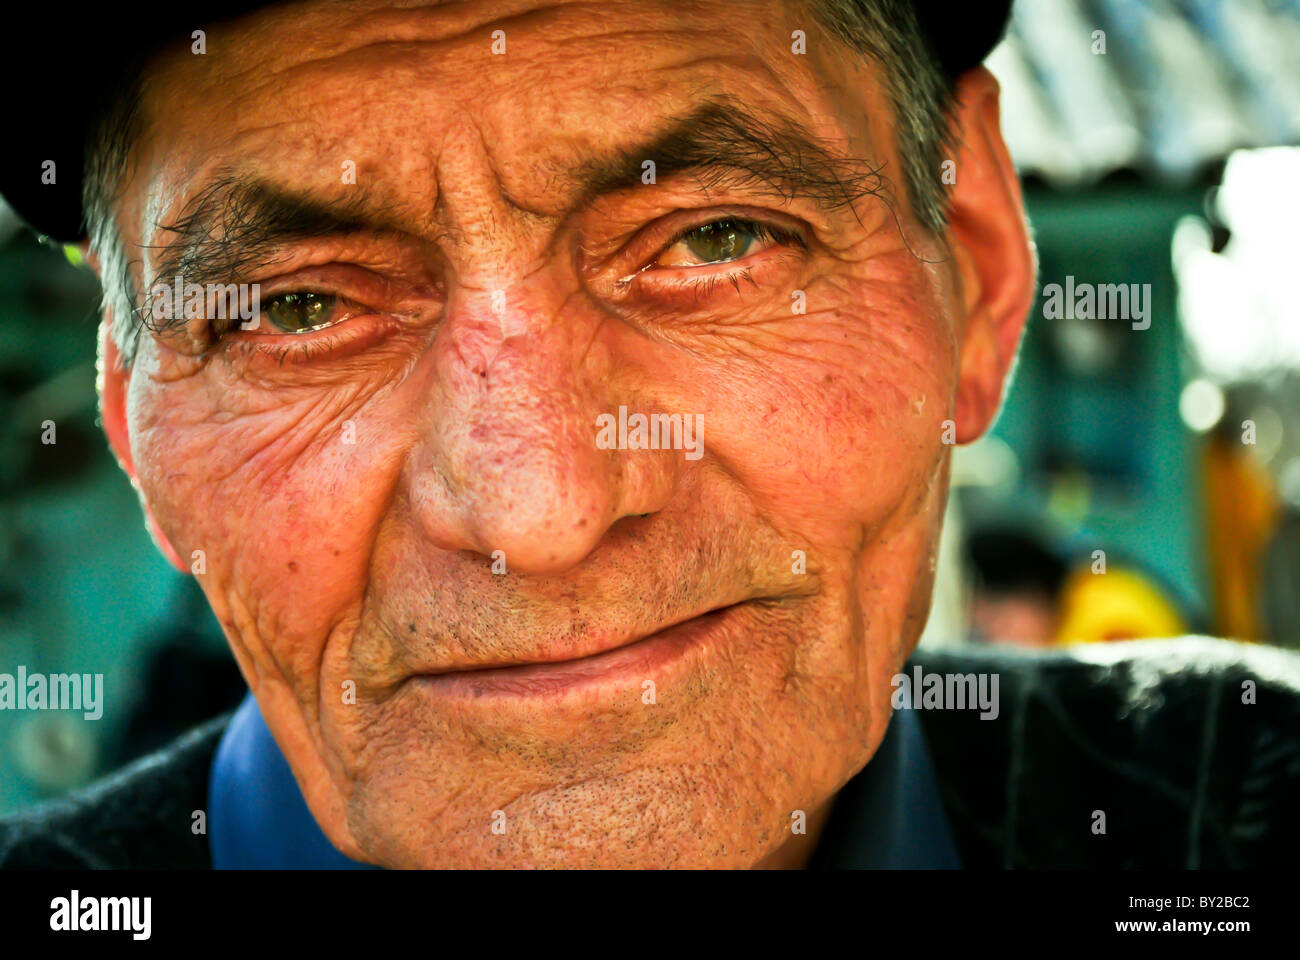 Old man with teary eyes - Stock Image